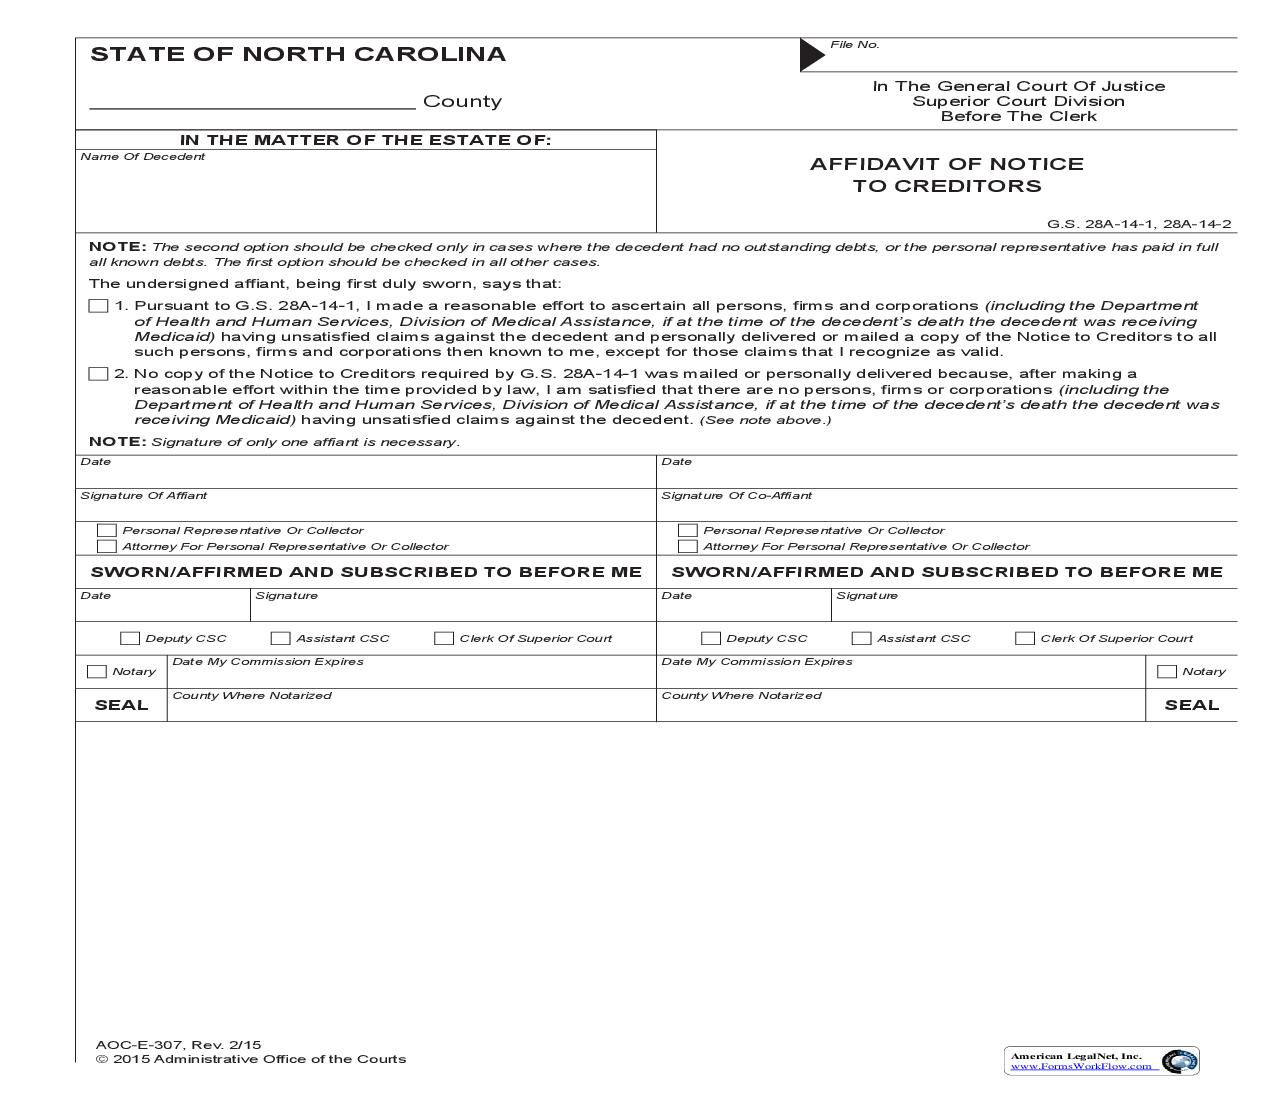 Affidavit Of Notice To Creditors {E-307} | Pdf Fpdf Doc Docx | North Carolina